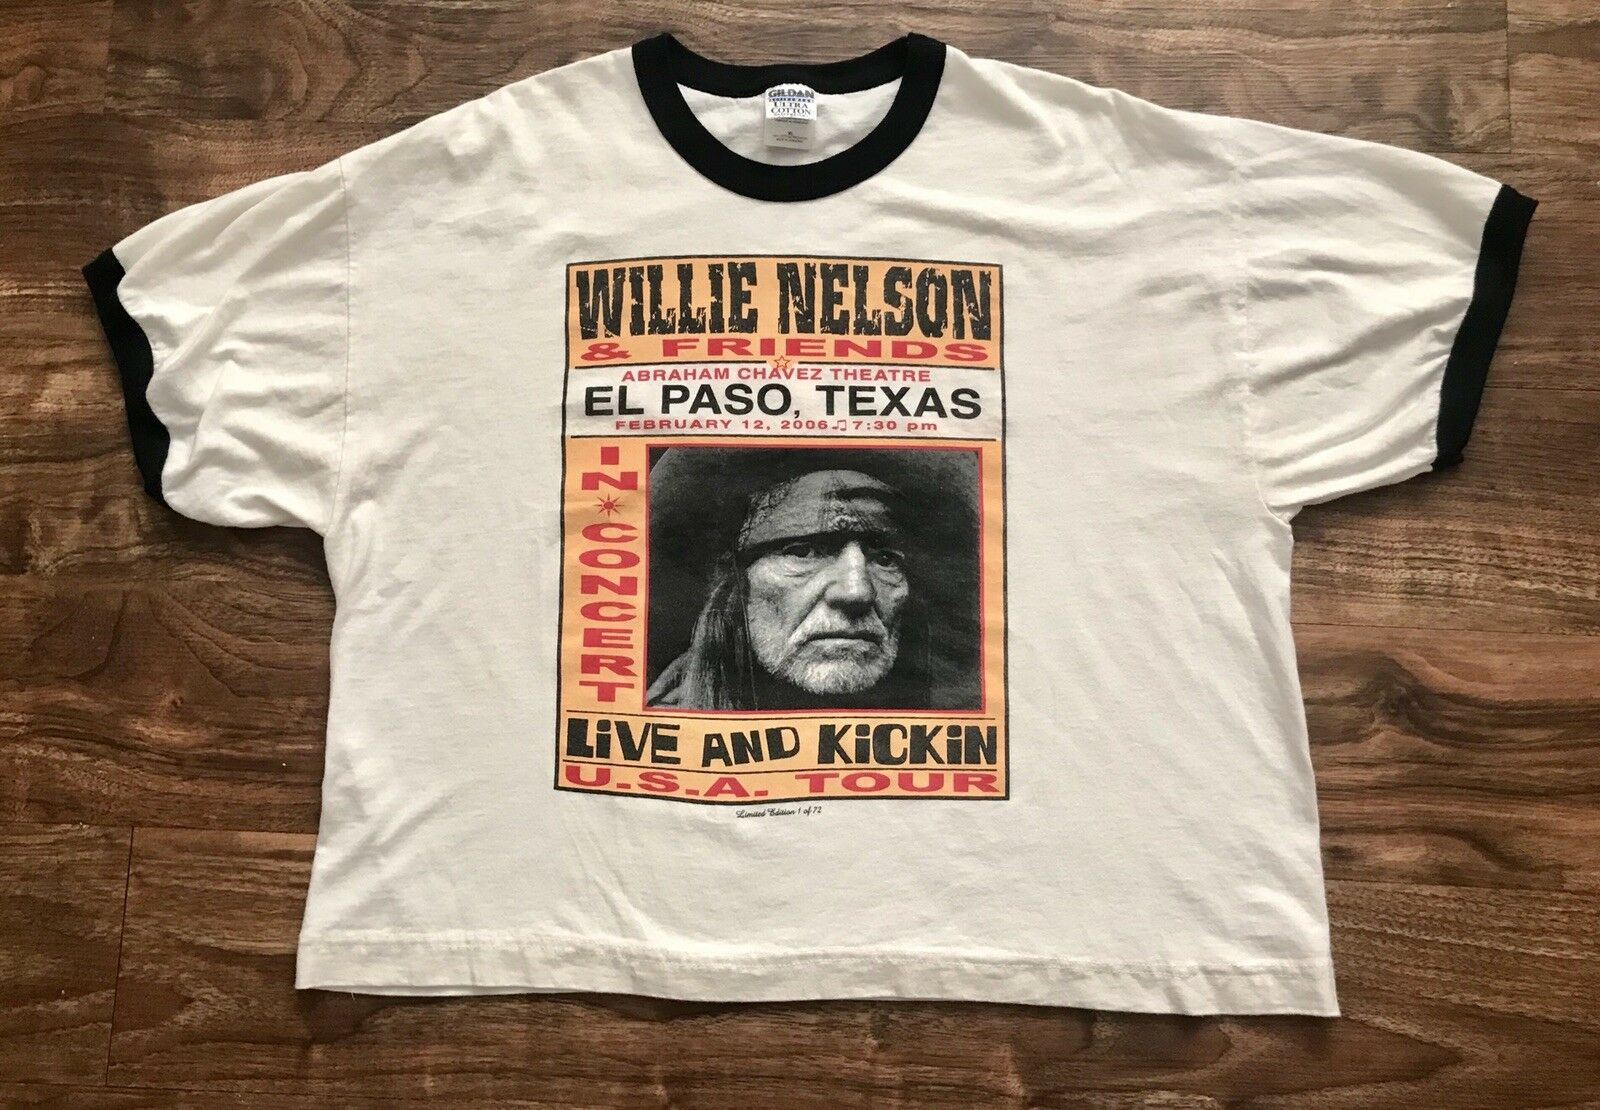 Rare Willie Nelson Live and Kickin 2006 Promo Tour T-Shirt Crop Top 1 of 72